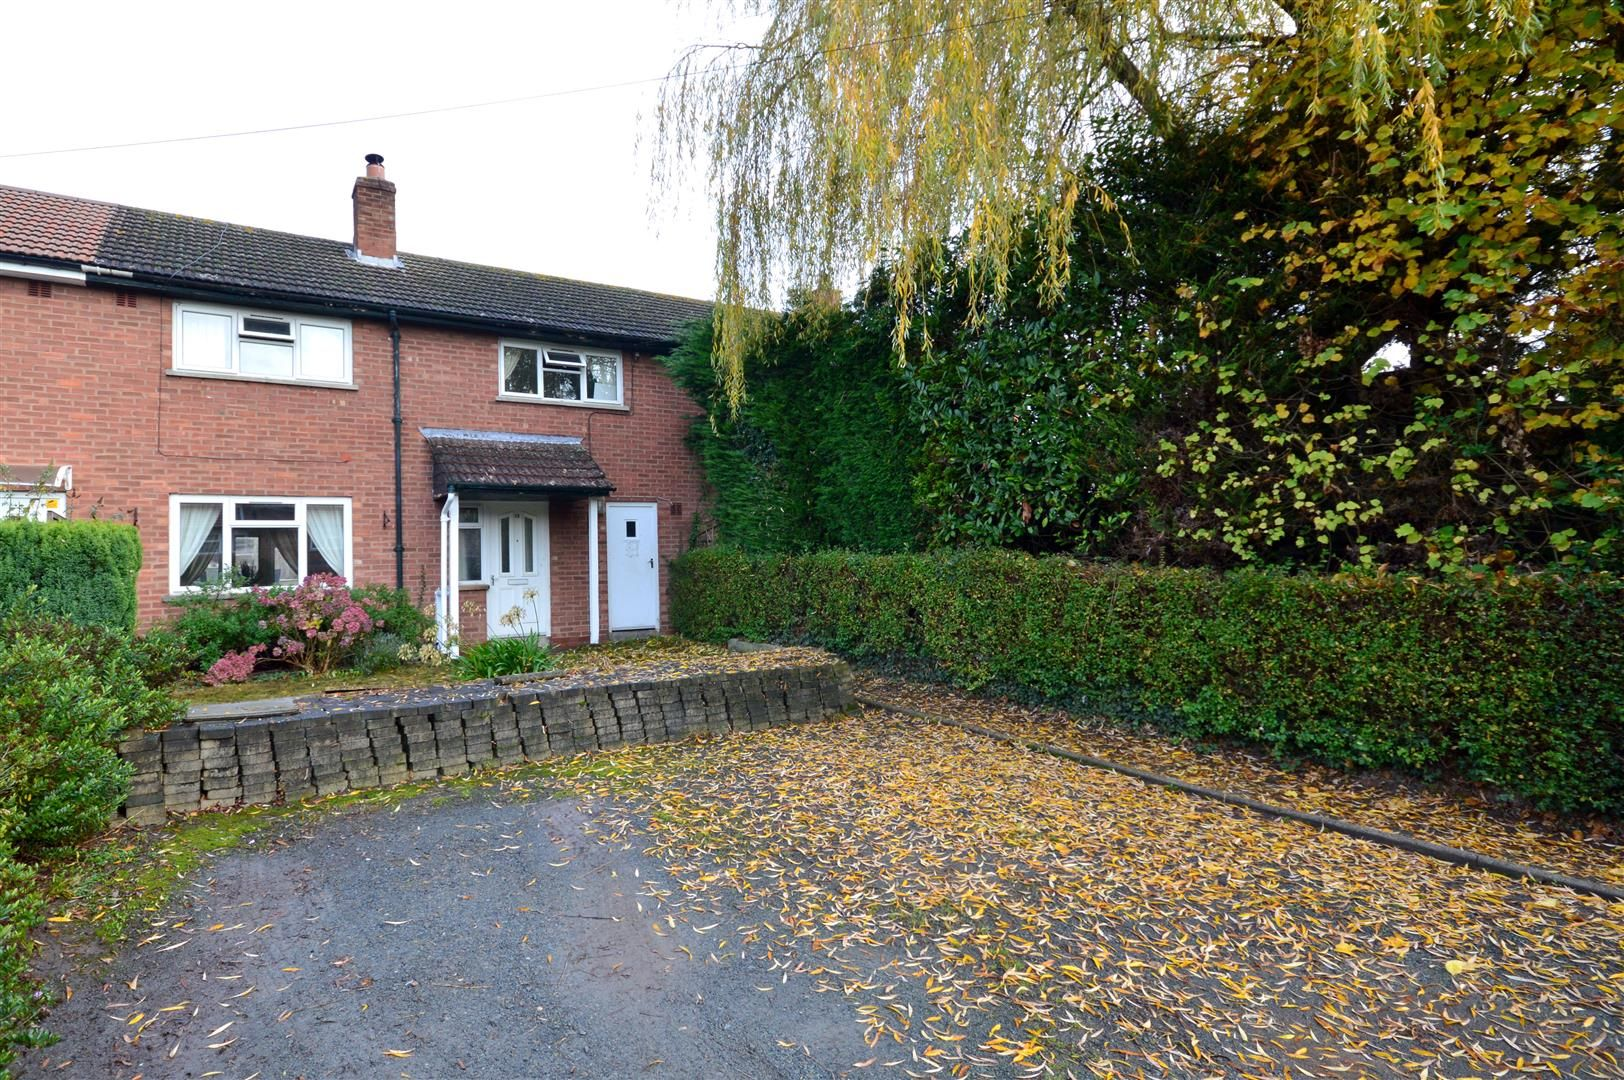 3 bed terraced for sale in Weobley - Property Image 1